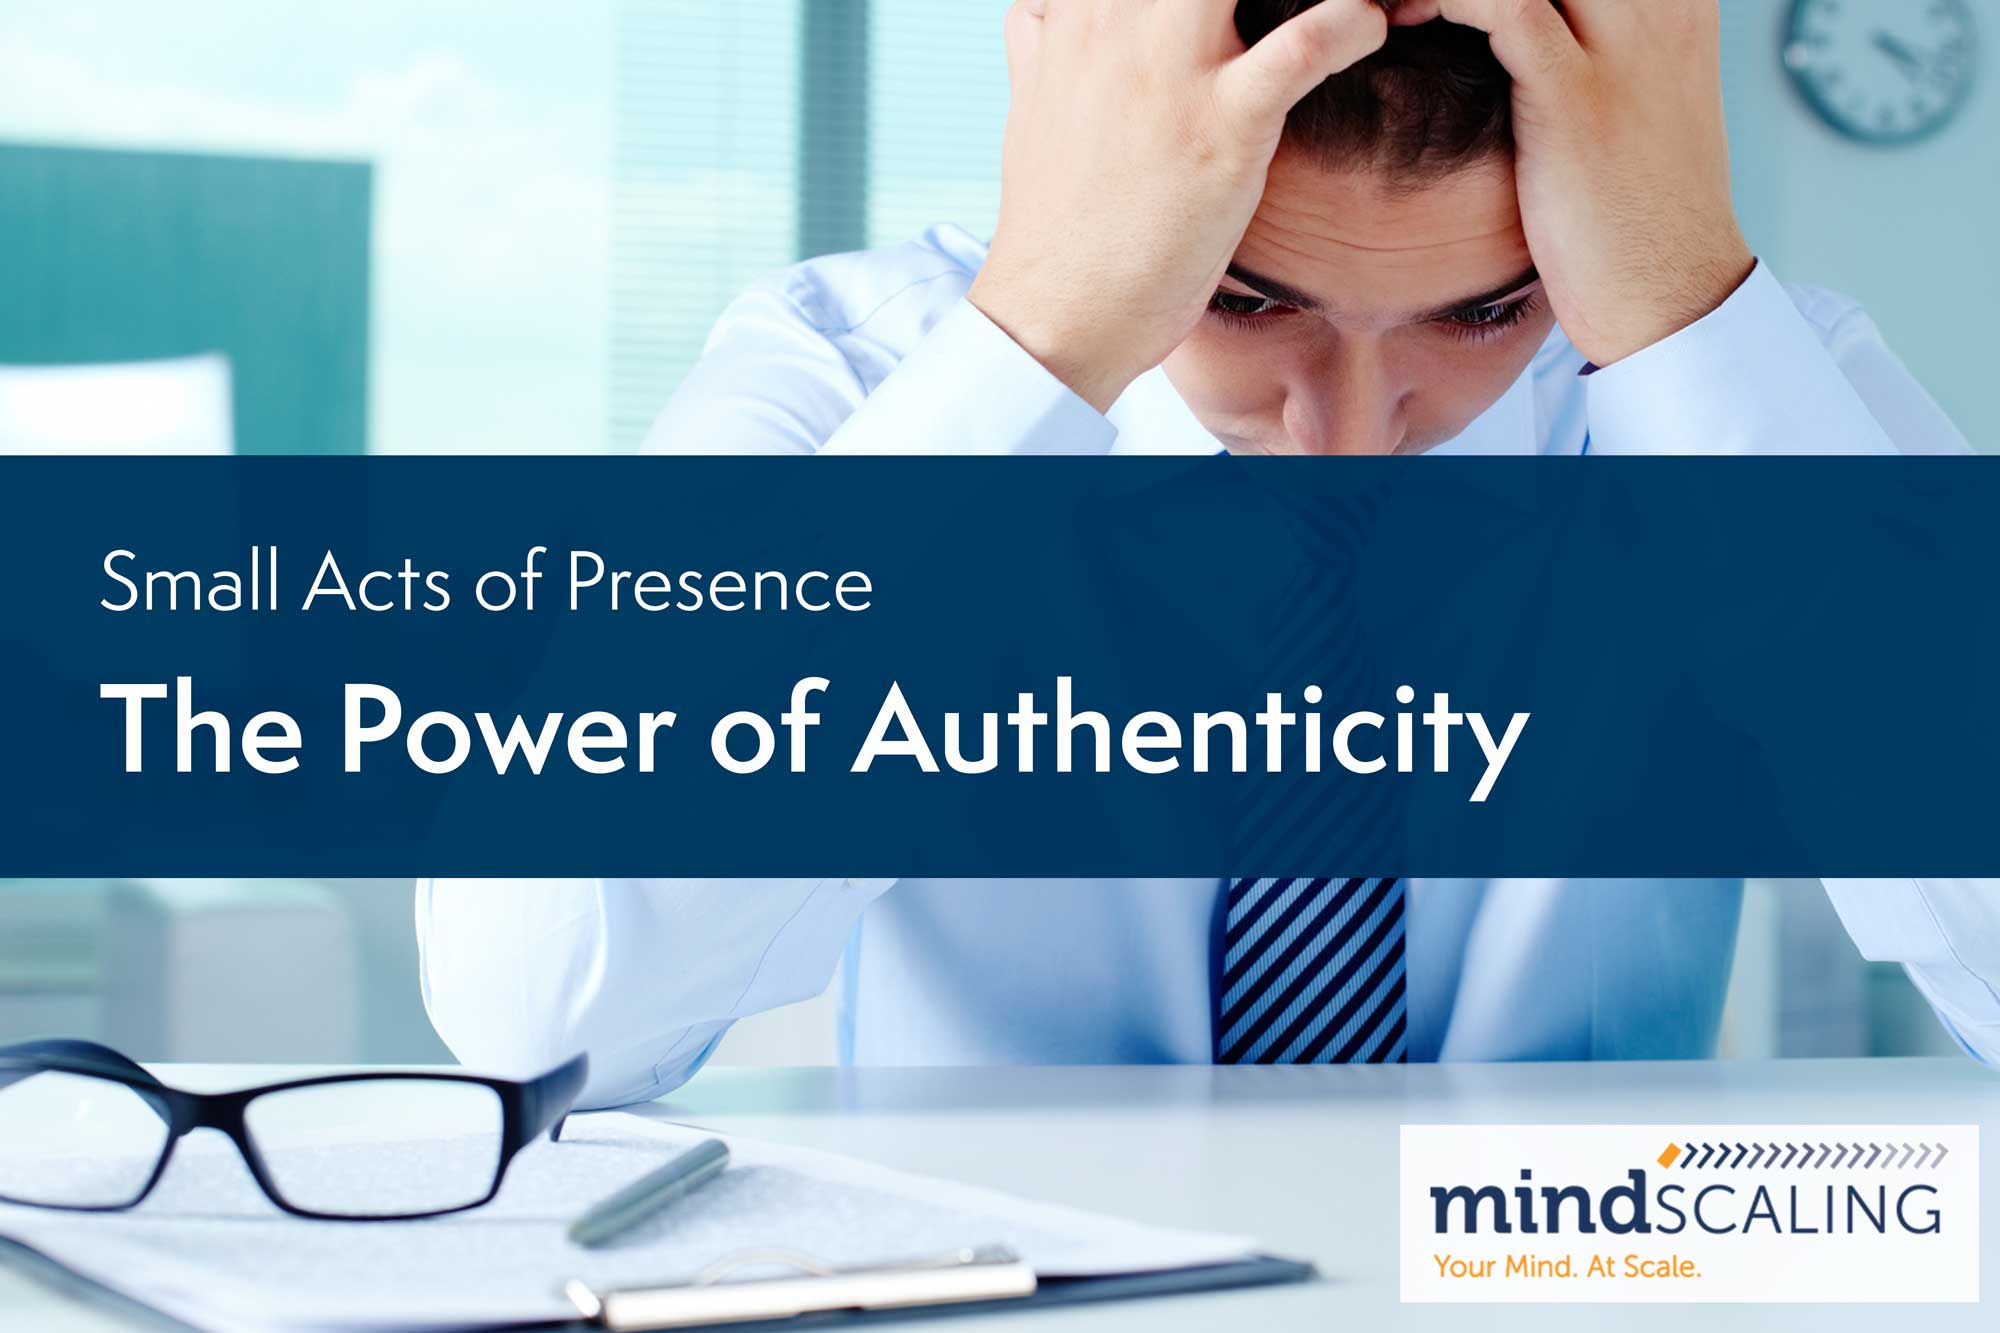 Small Acts of Presence: The Power of Authenticity